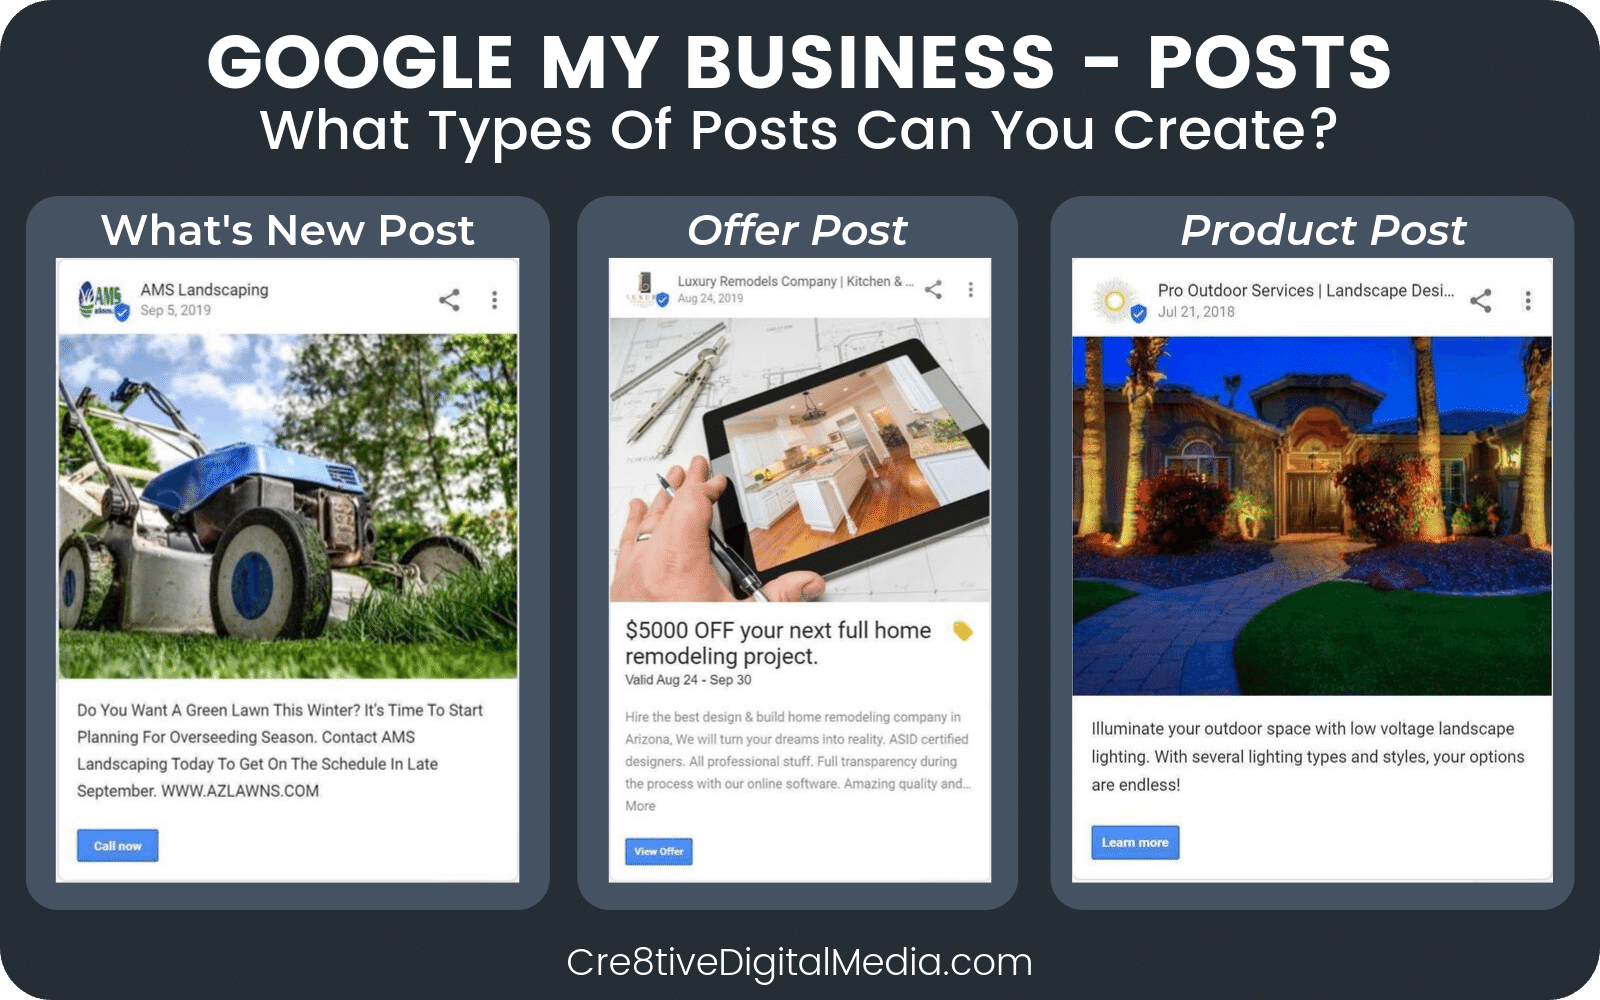 Google My Business-Posts Feature-What types of posts can you create?